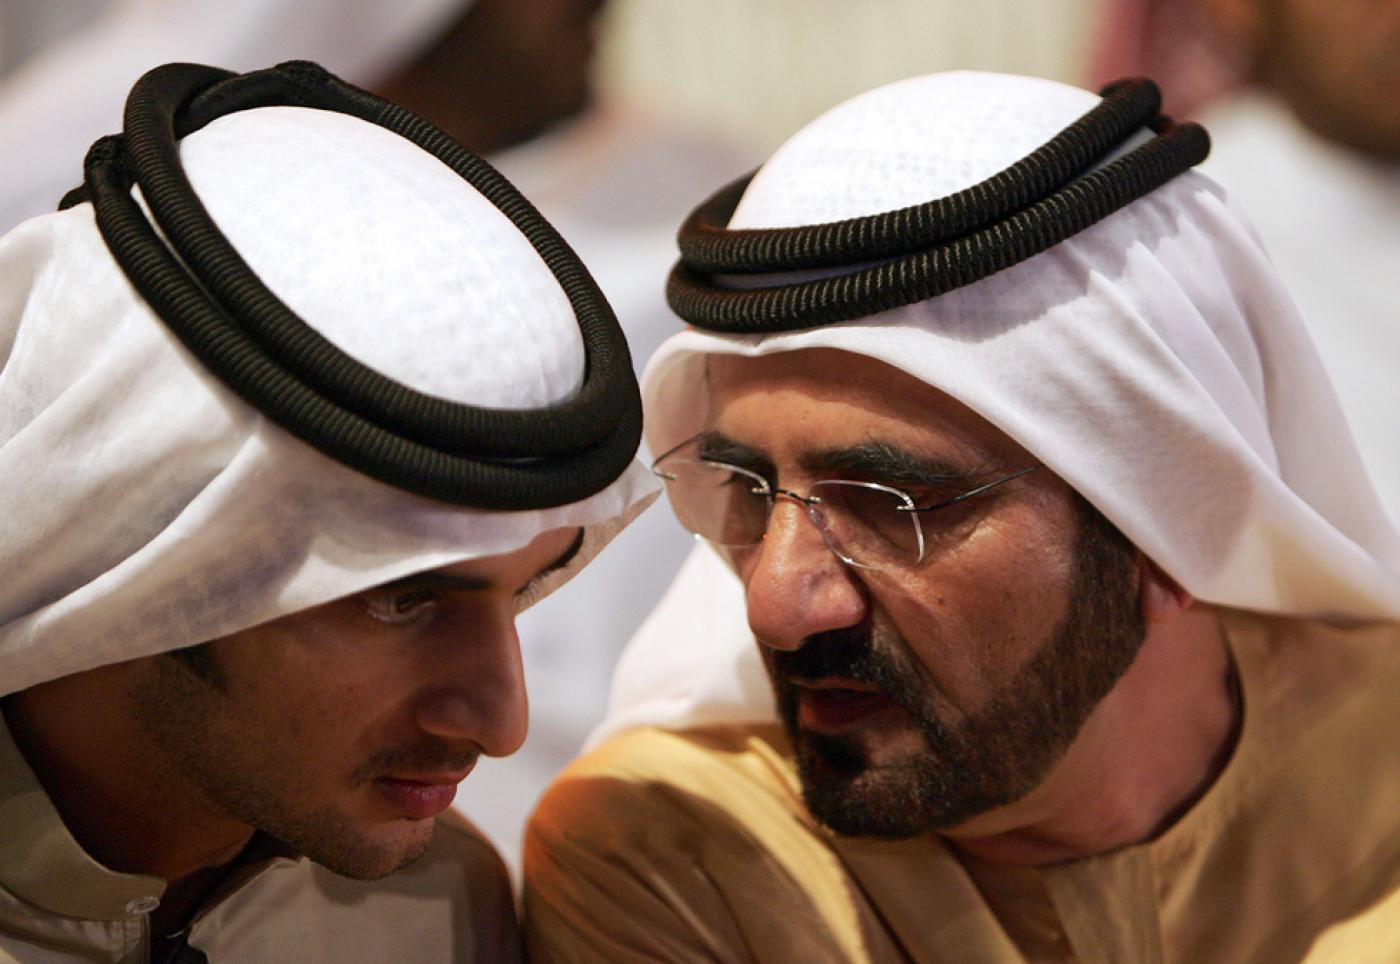 Dubai ruler's 33-year-old son dies of heart attack | Middle East Eye